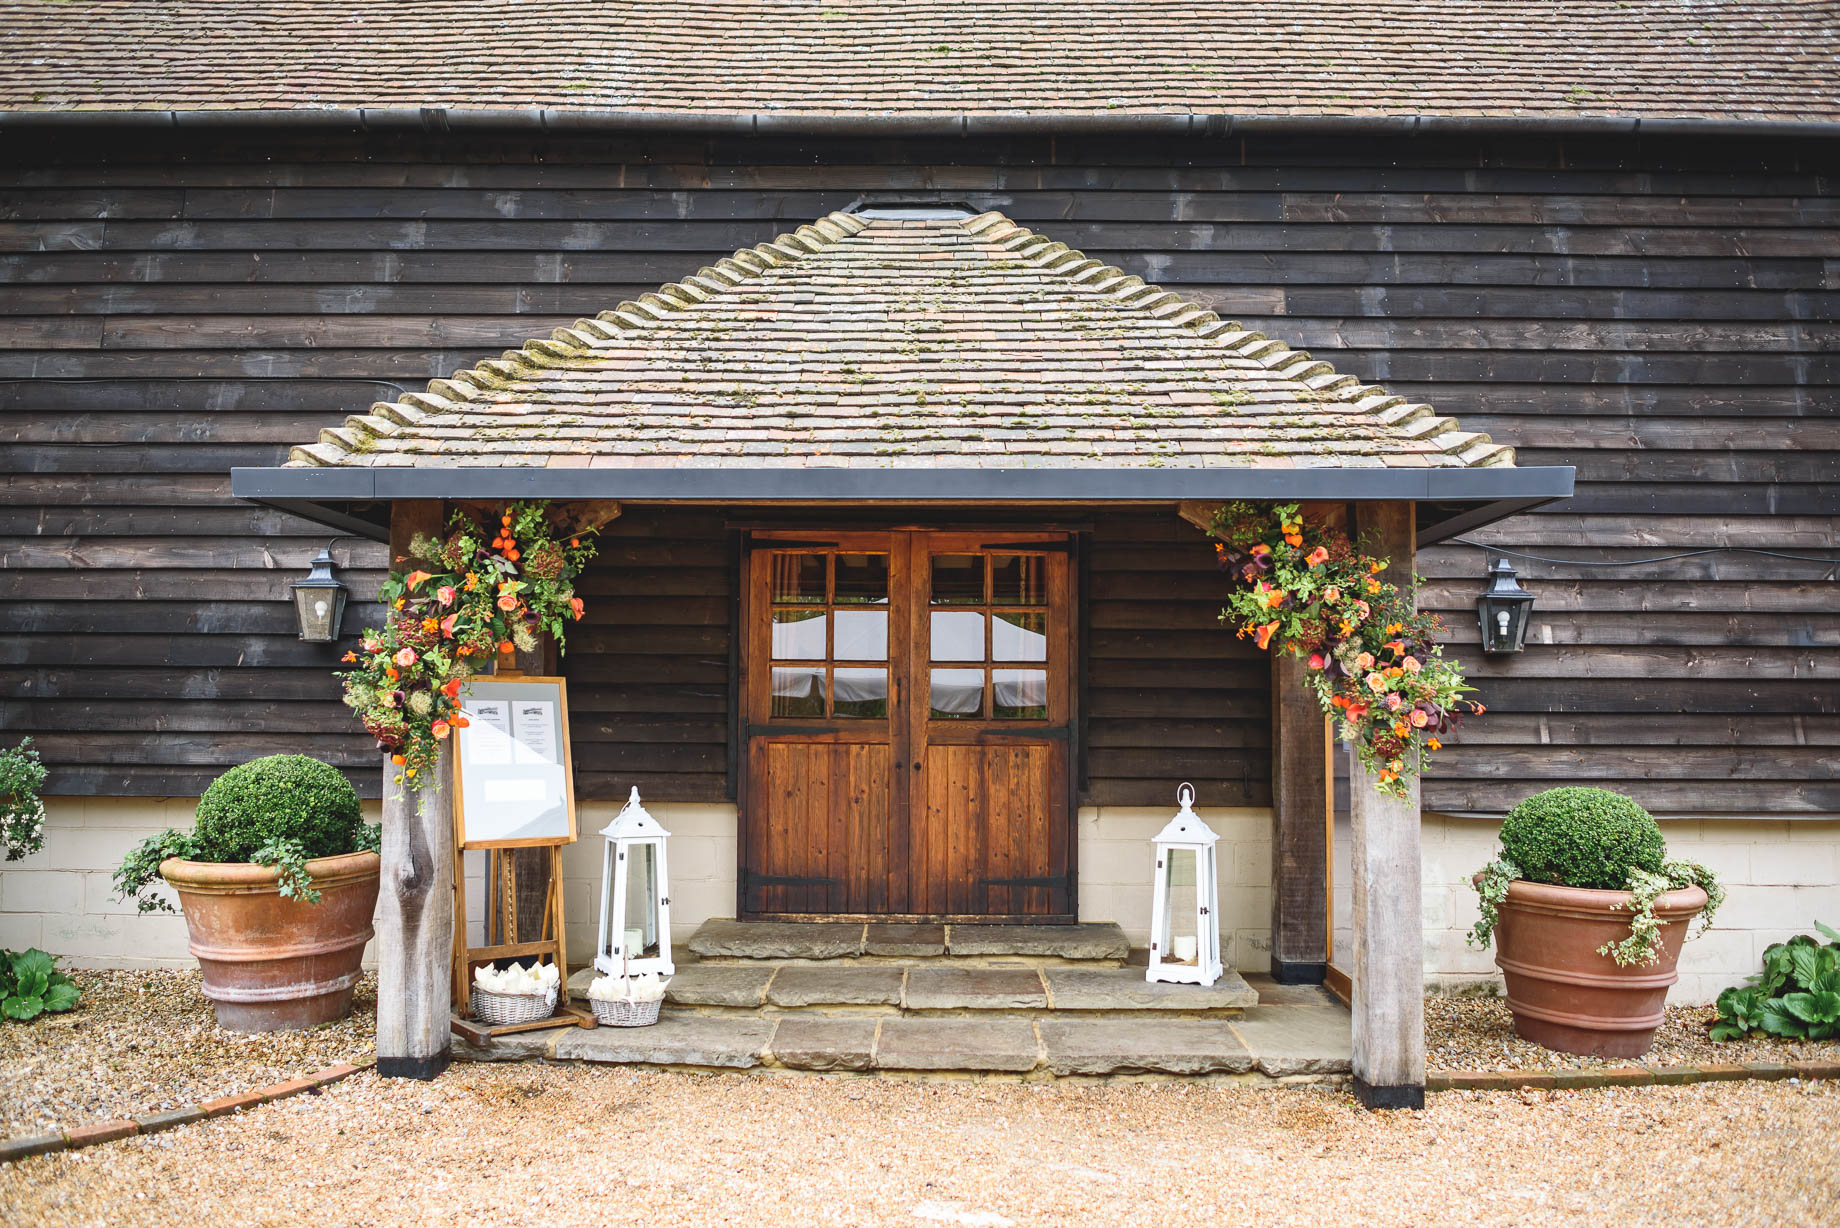 Gate Street Barn wedding photography - Guy Collier - Claire and Andy (4 of 192)